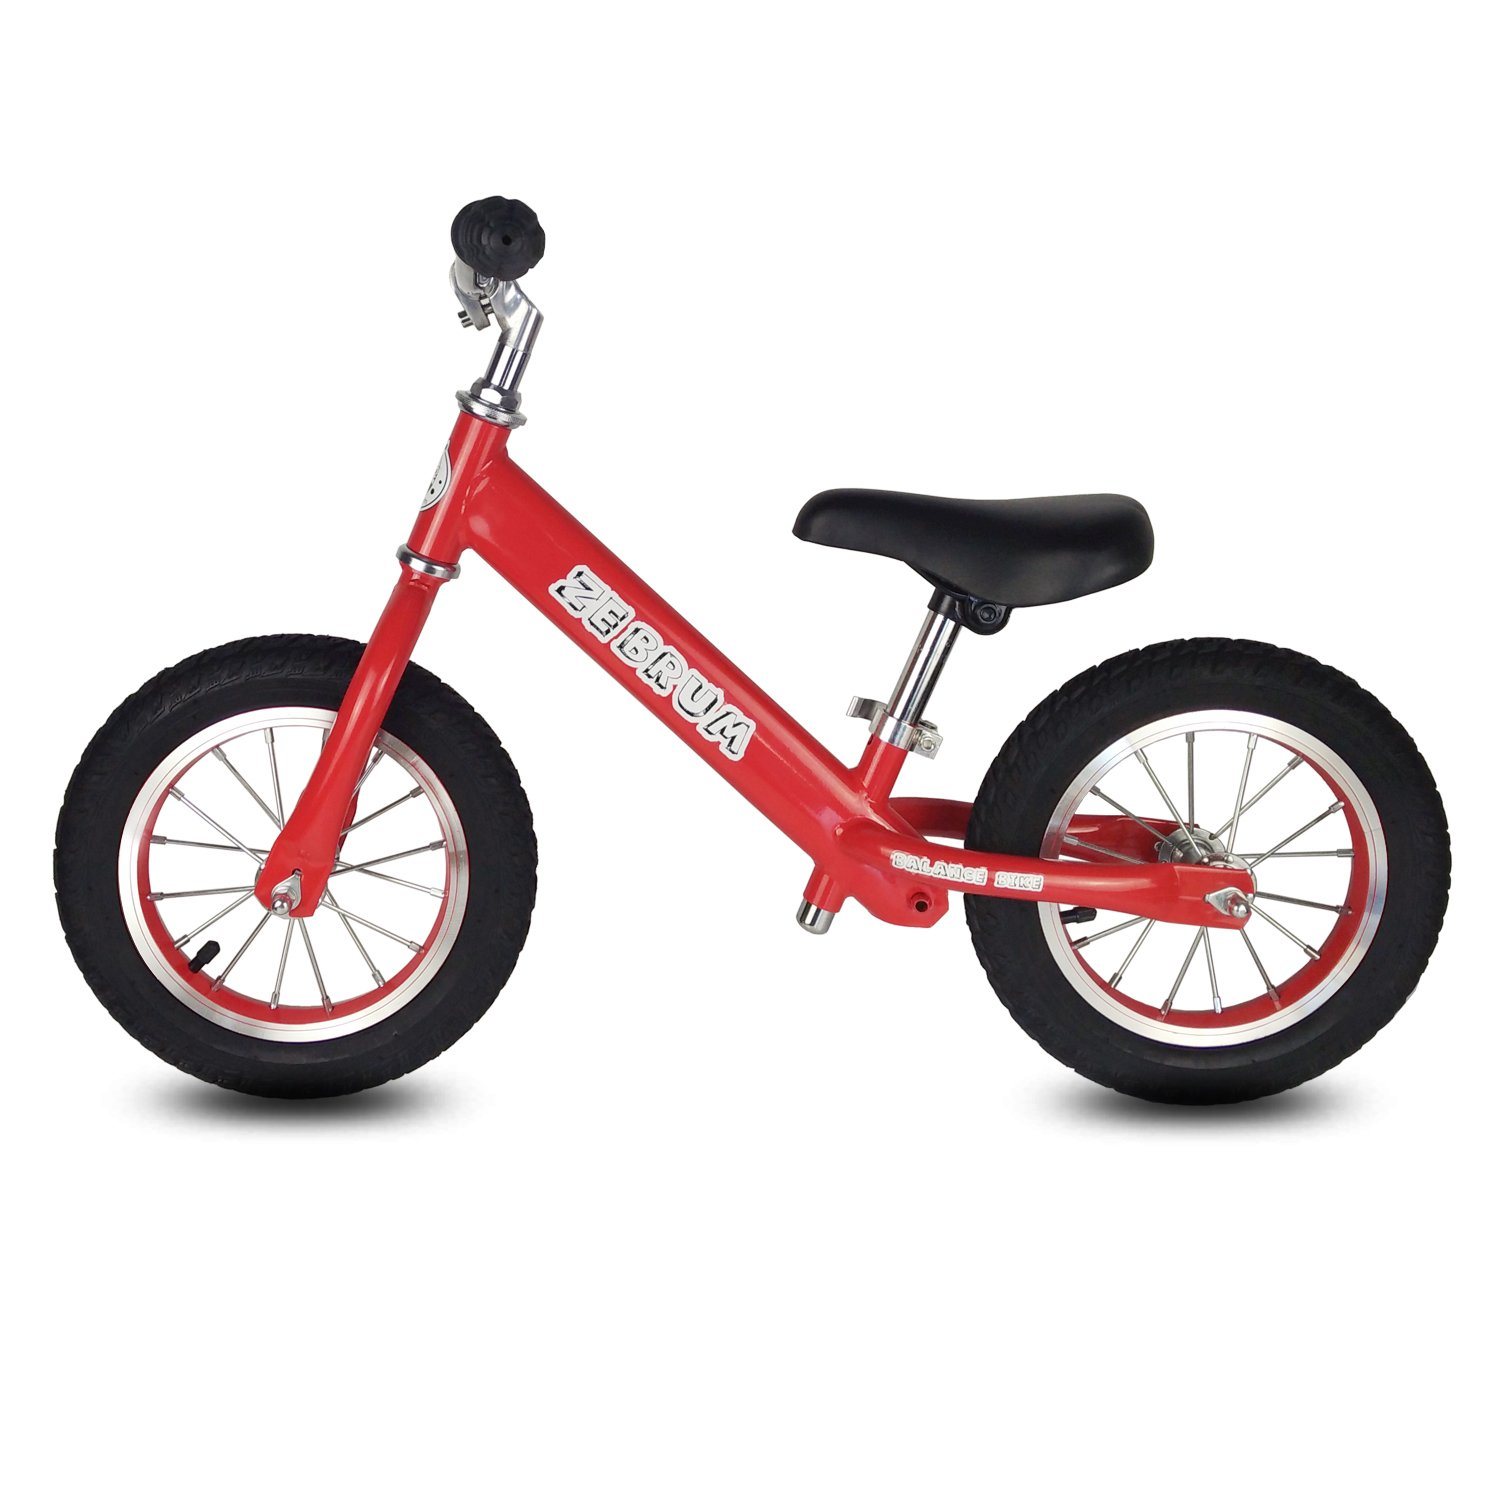 Toddler Balance Bike, 12'' Tires Glider bike for Kids 2-5 Years Old by Zebrum, Quick Adjust &Padded Seat, No Pedals (Red)